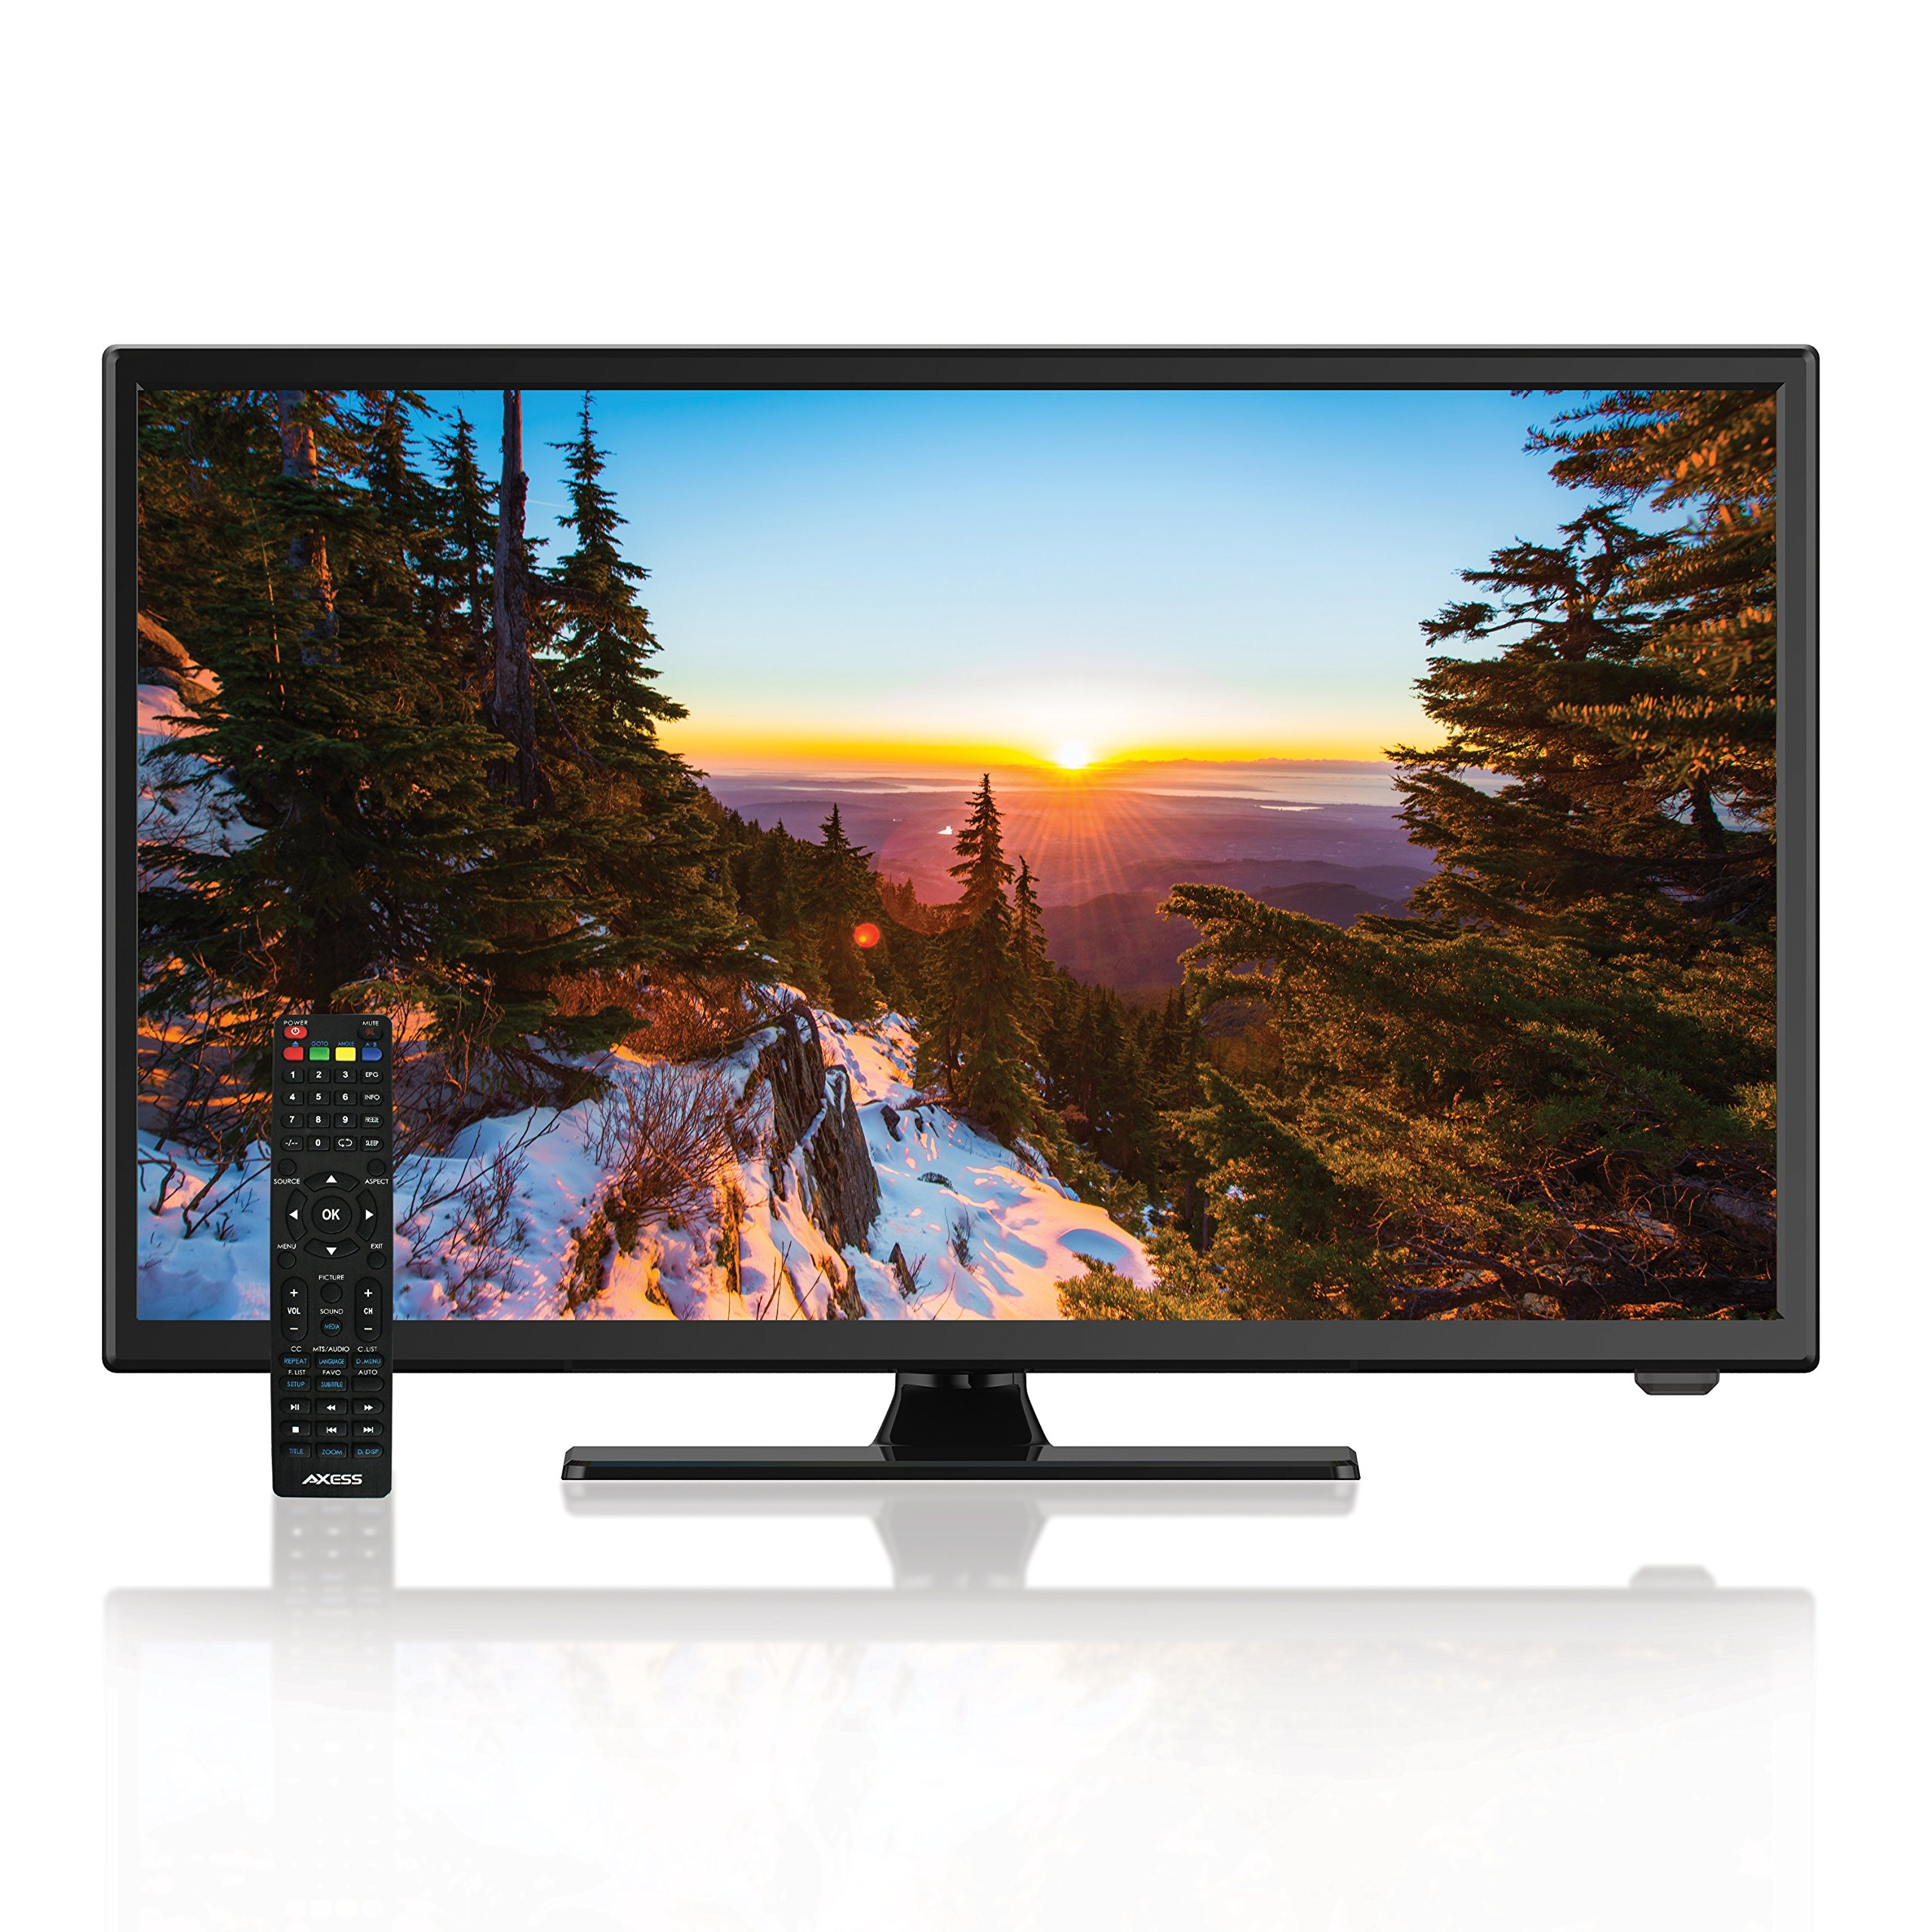 AXESS TVD1805-22 22-Inch 1080p LED HDTV, Features 12V Car Cord Technology, VGA/HDMI/USB Inputs, Built-in DVD Player, Full Function Remote